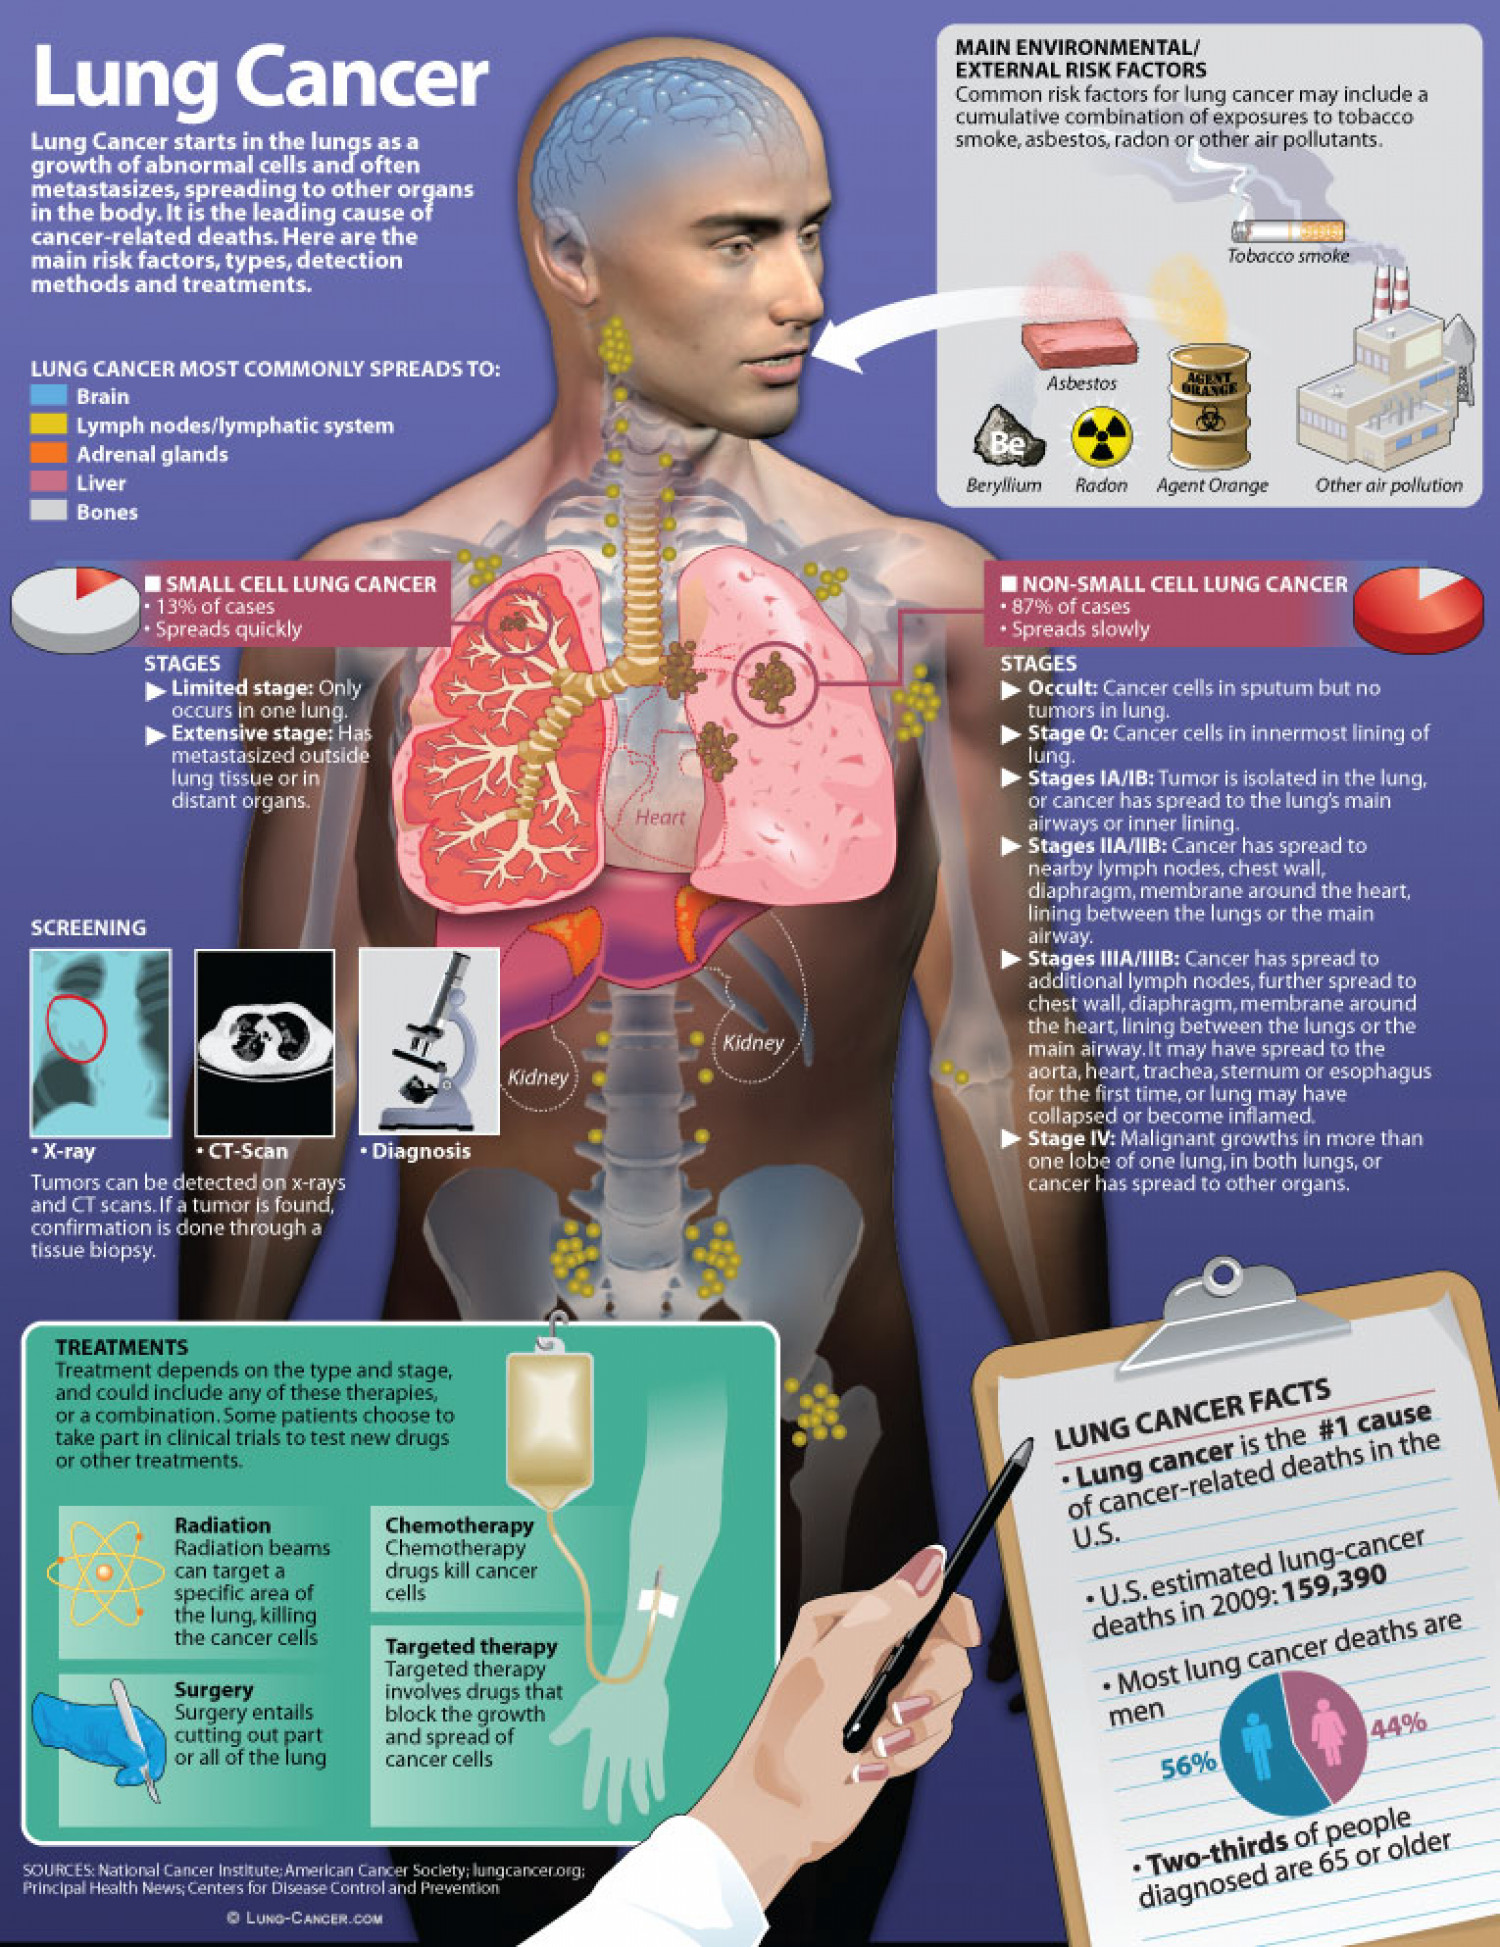 Lung Cancer Facts Infographic